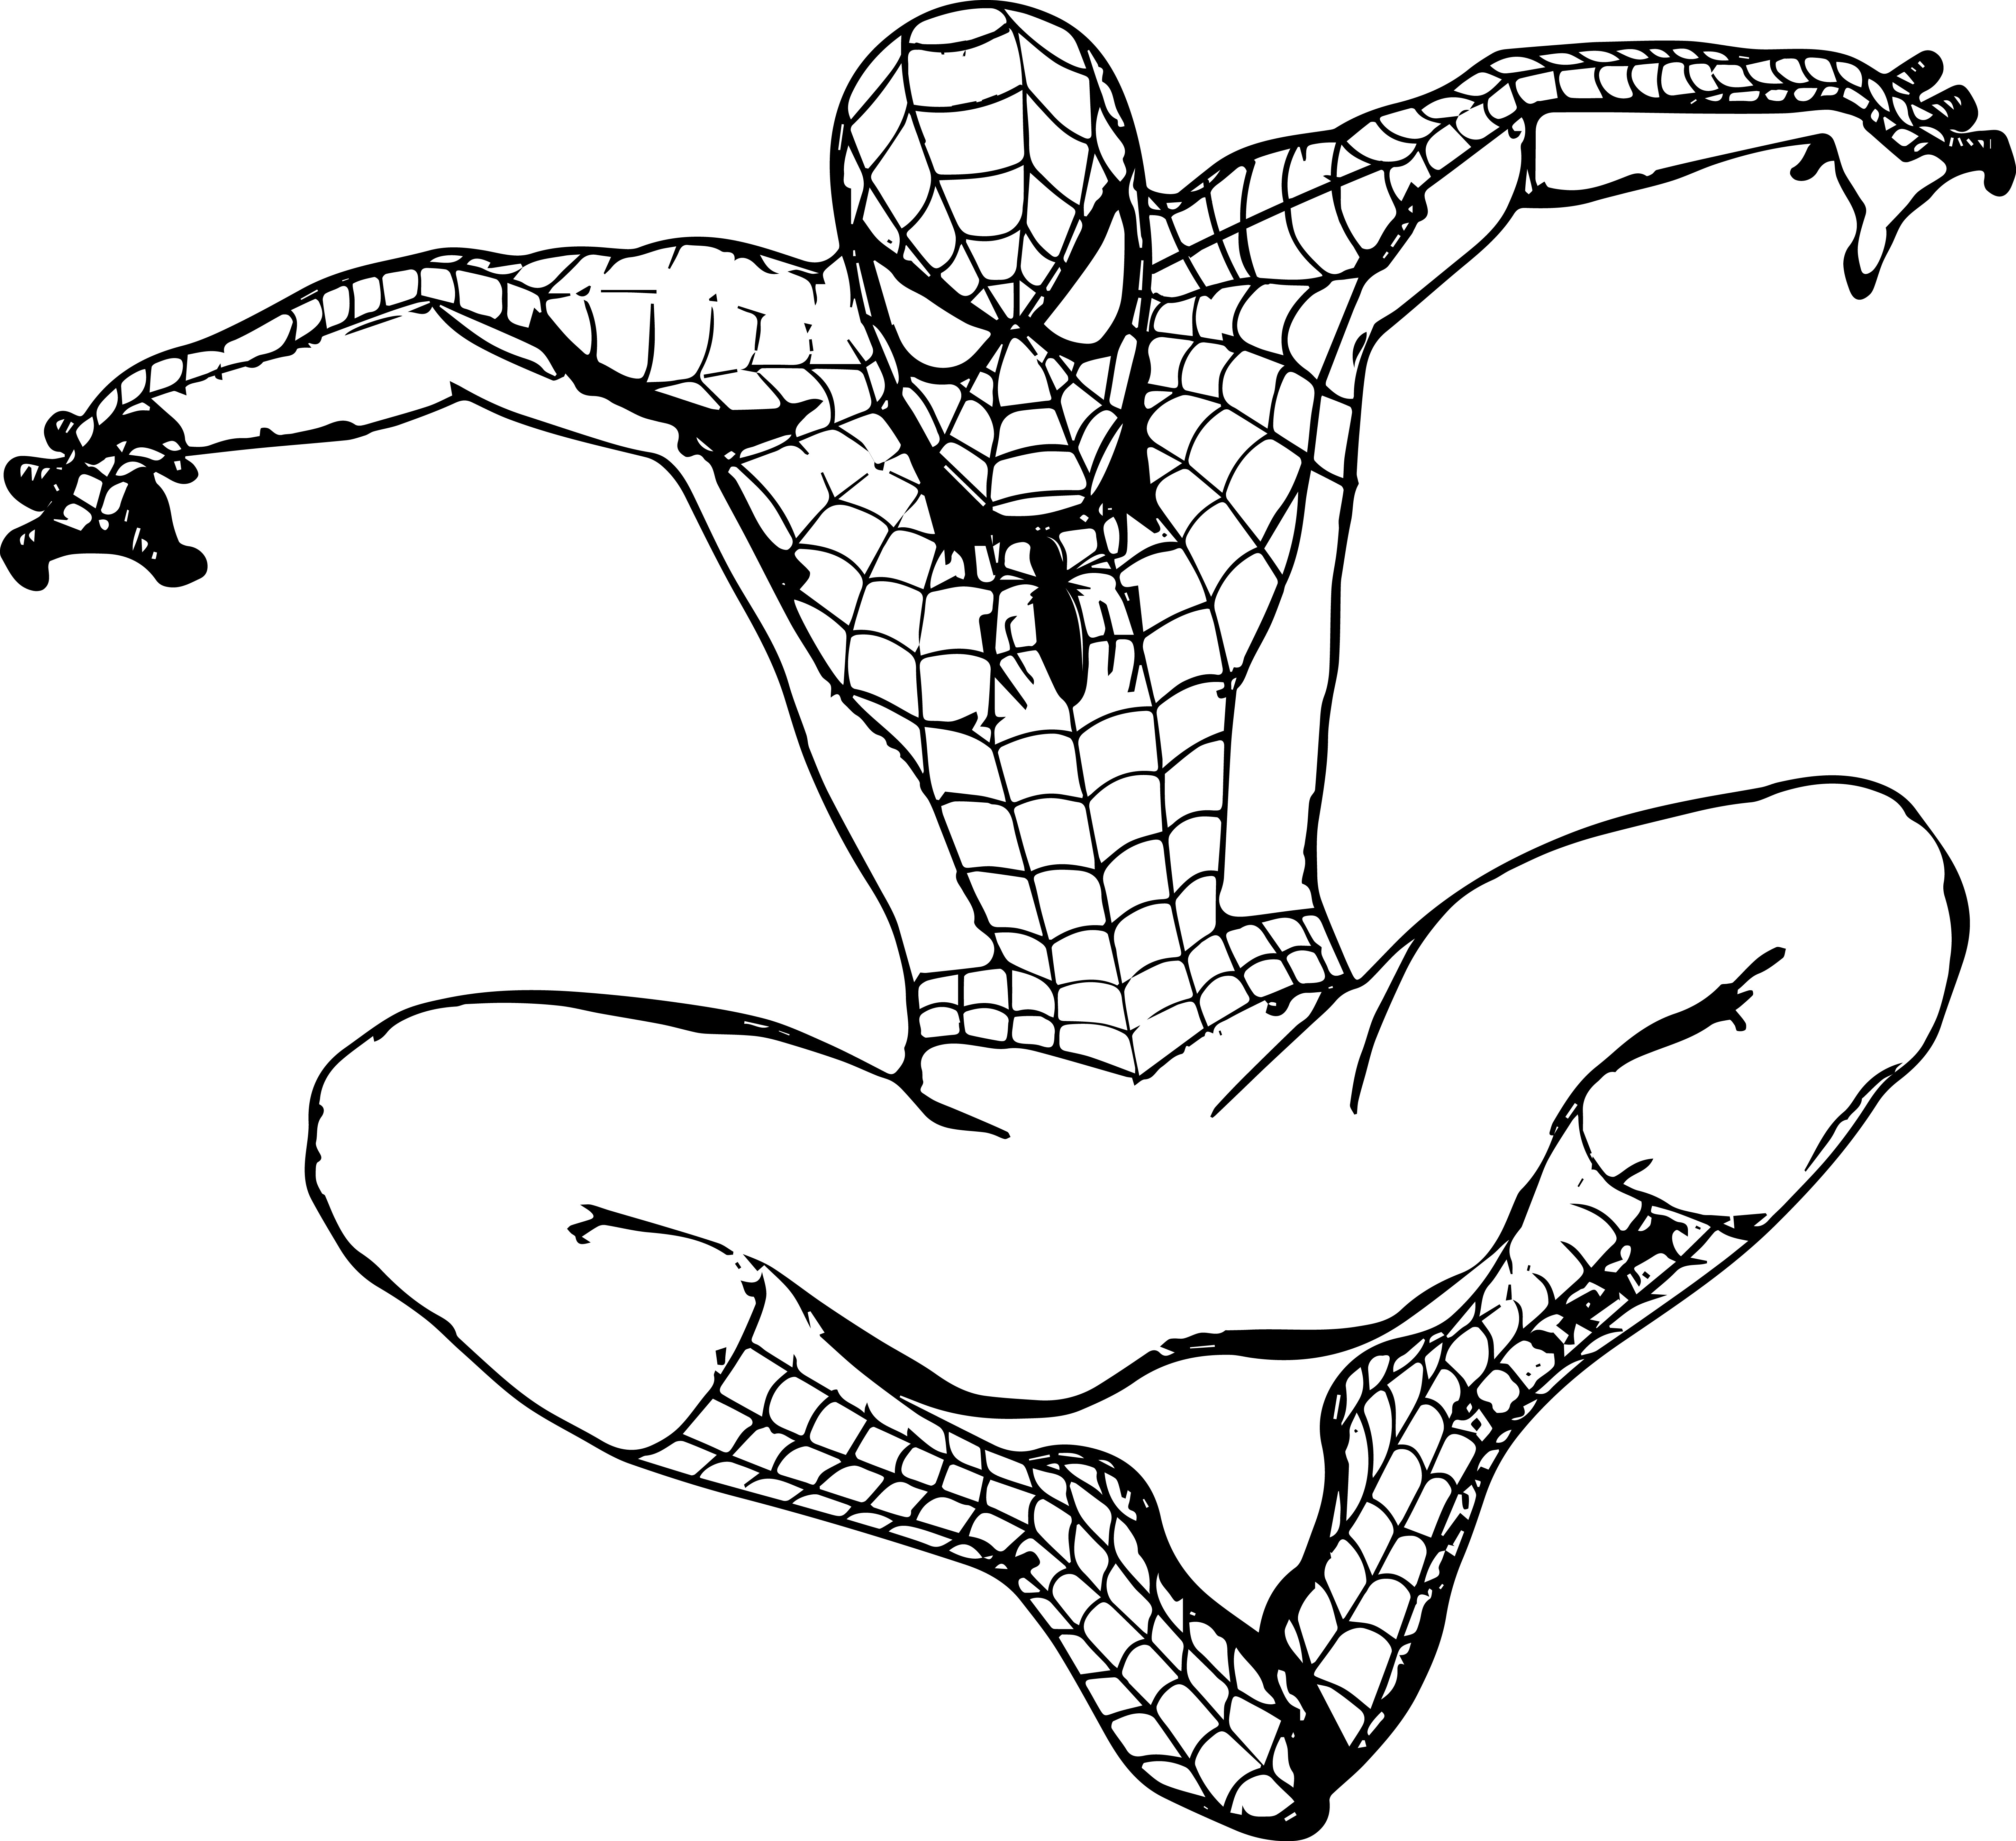 Spiderman Coloring Pages For Adults  Spiderman Coloring Pages coloringsuite